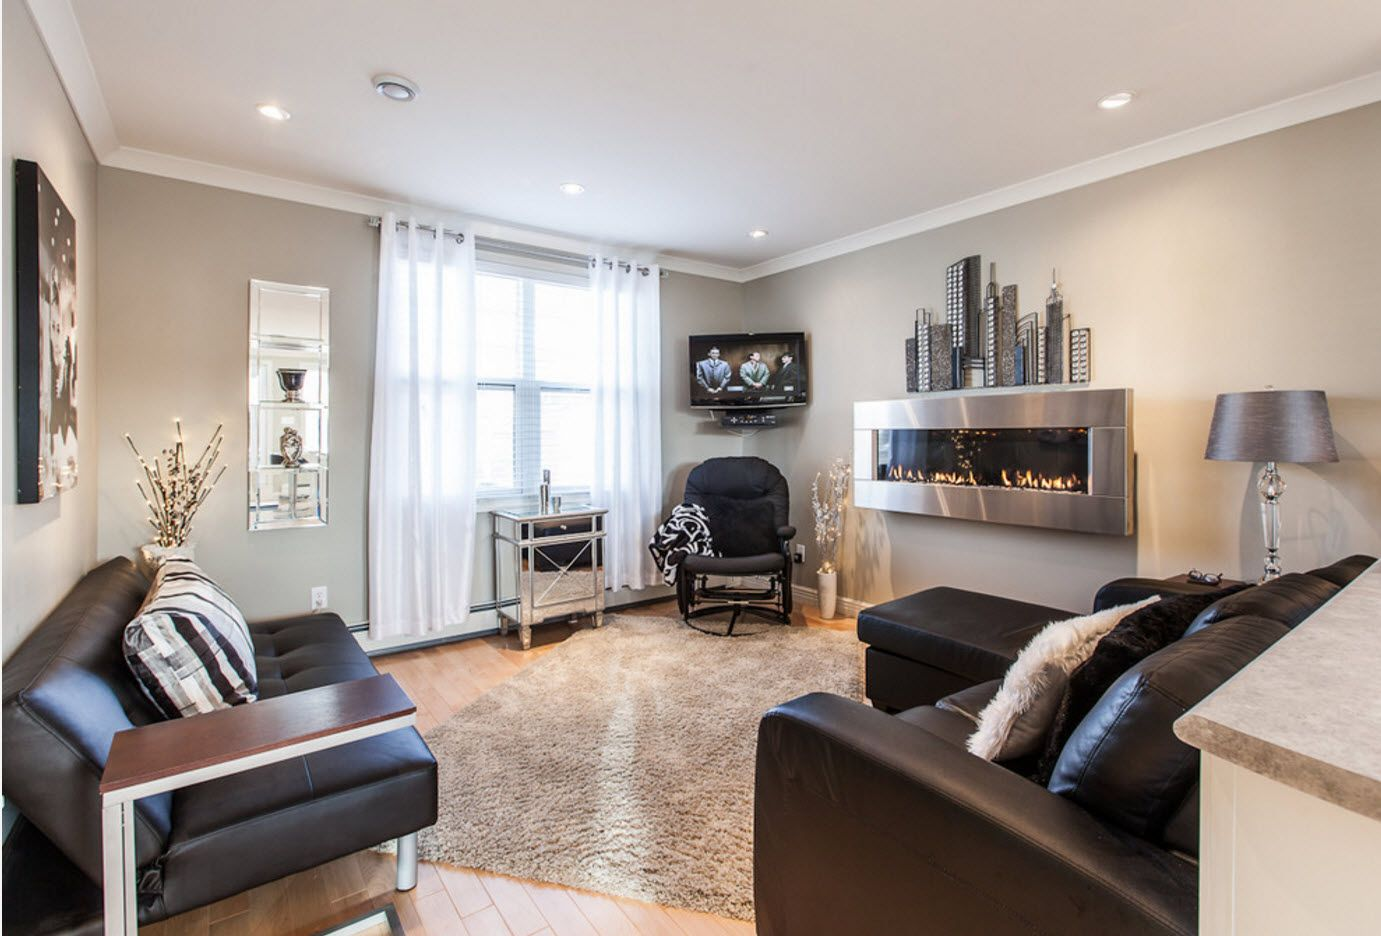 Modern realization of Art Nouveau style in the gray finished living room